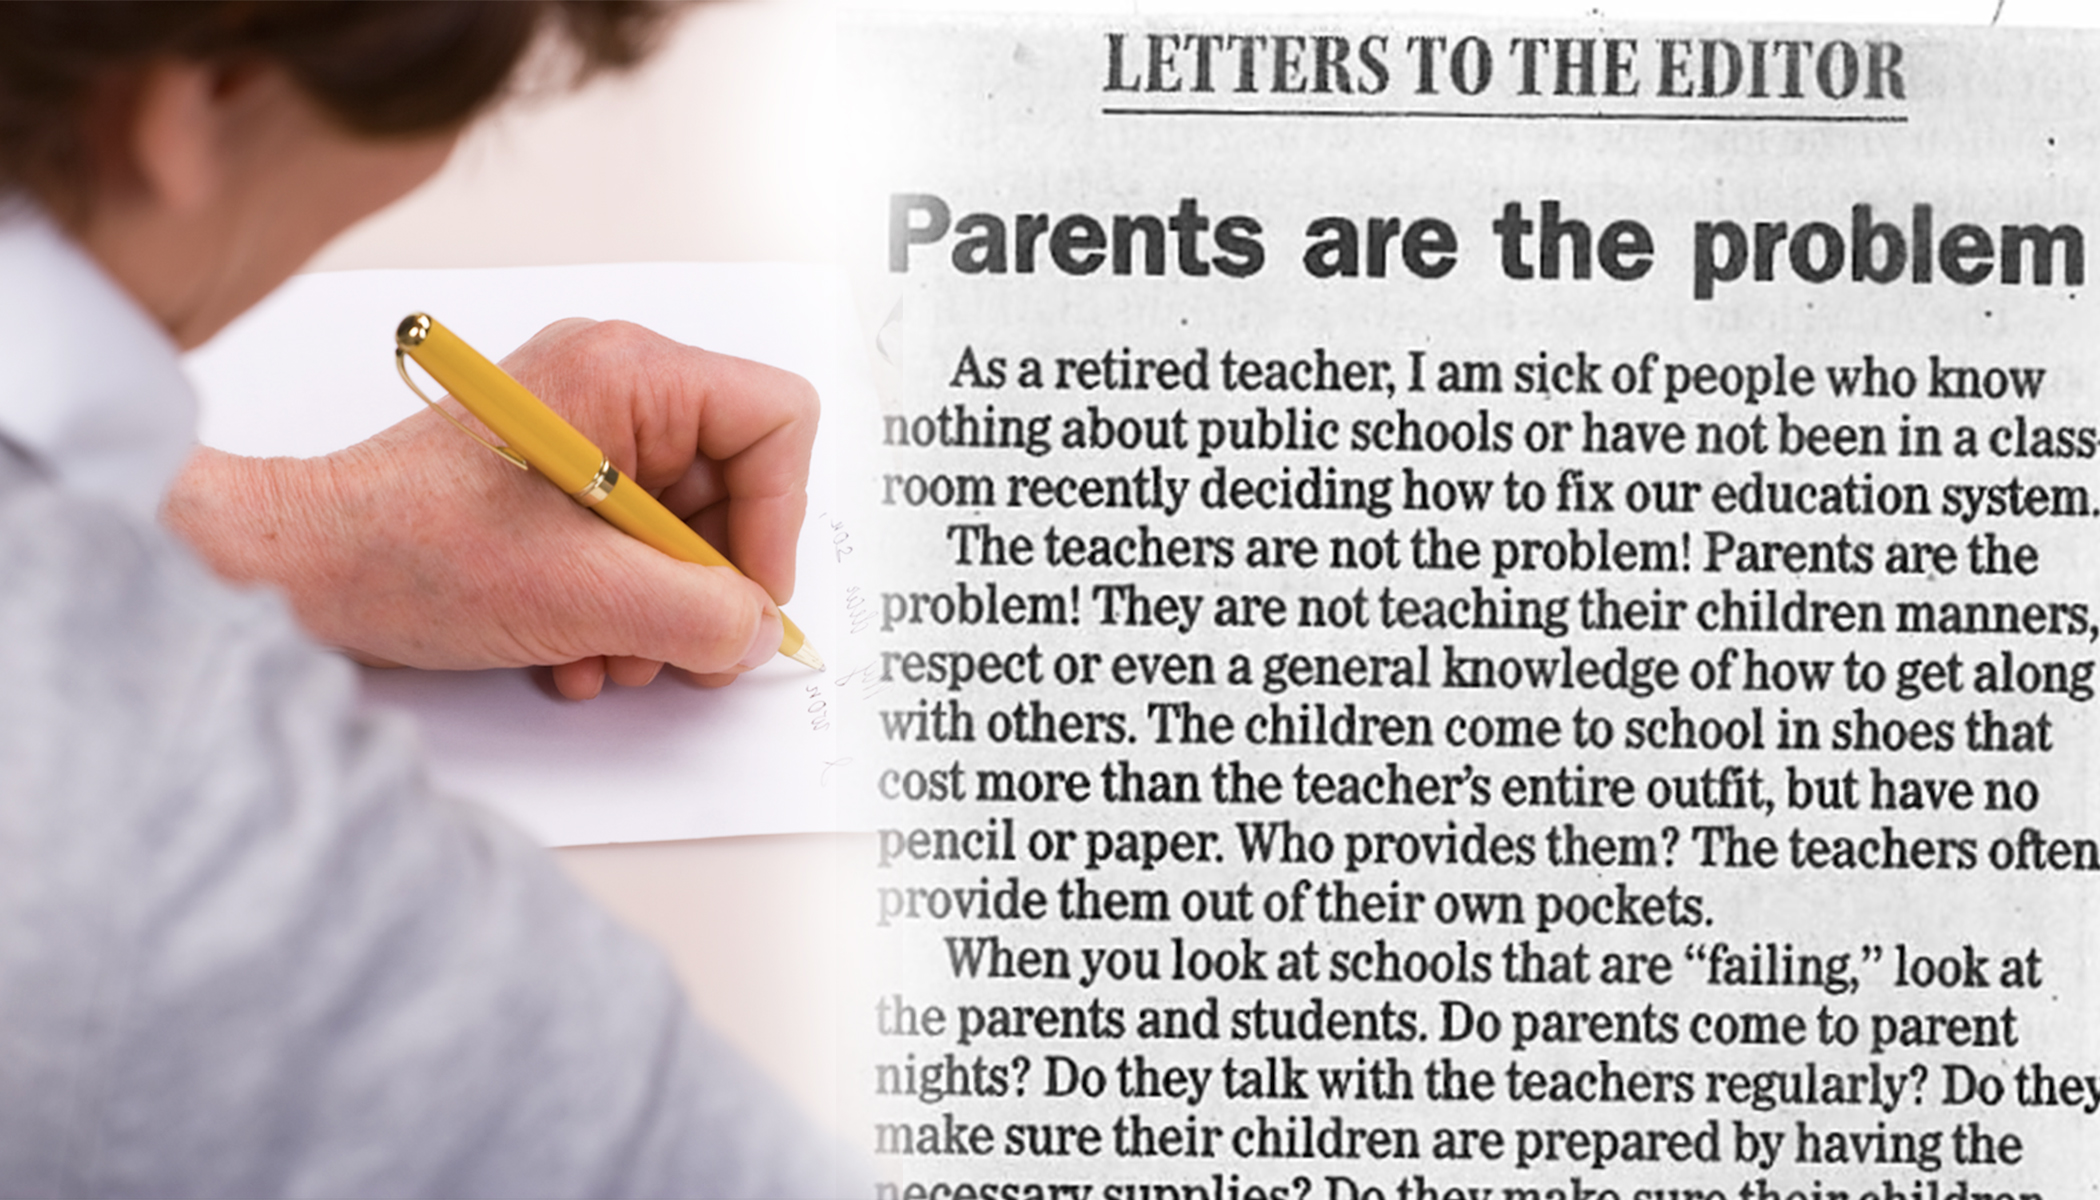 Retired Teacher Says 'Parents Are the Problem,' Her Letter Takes the Internet by Storm